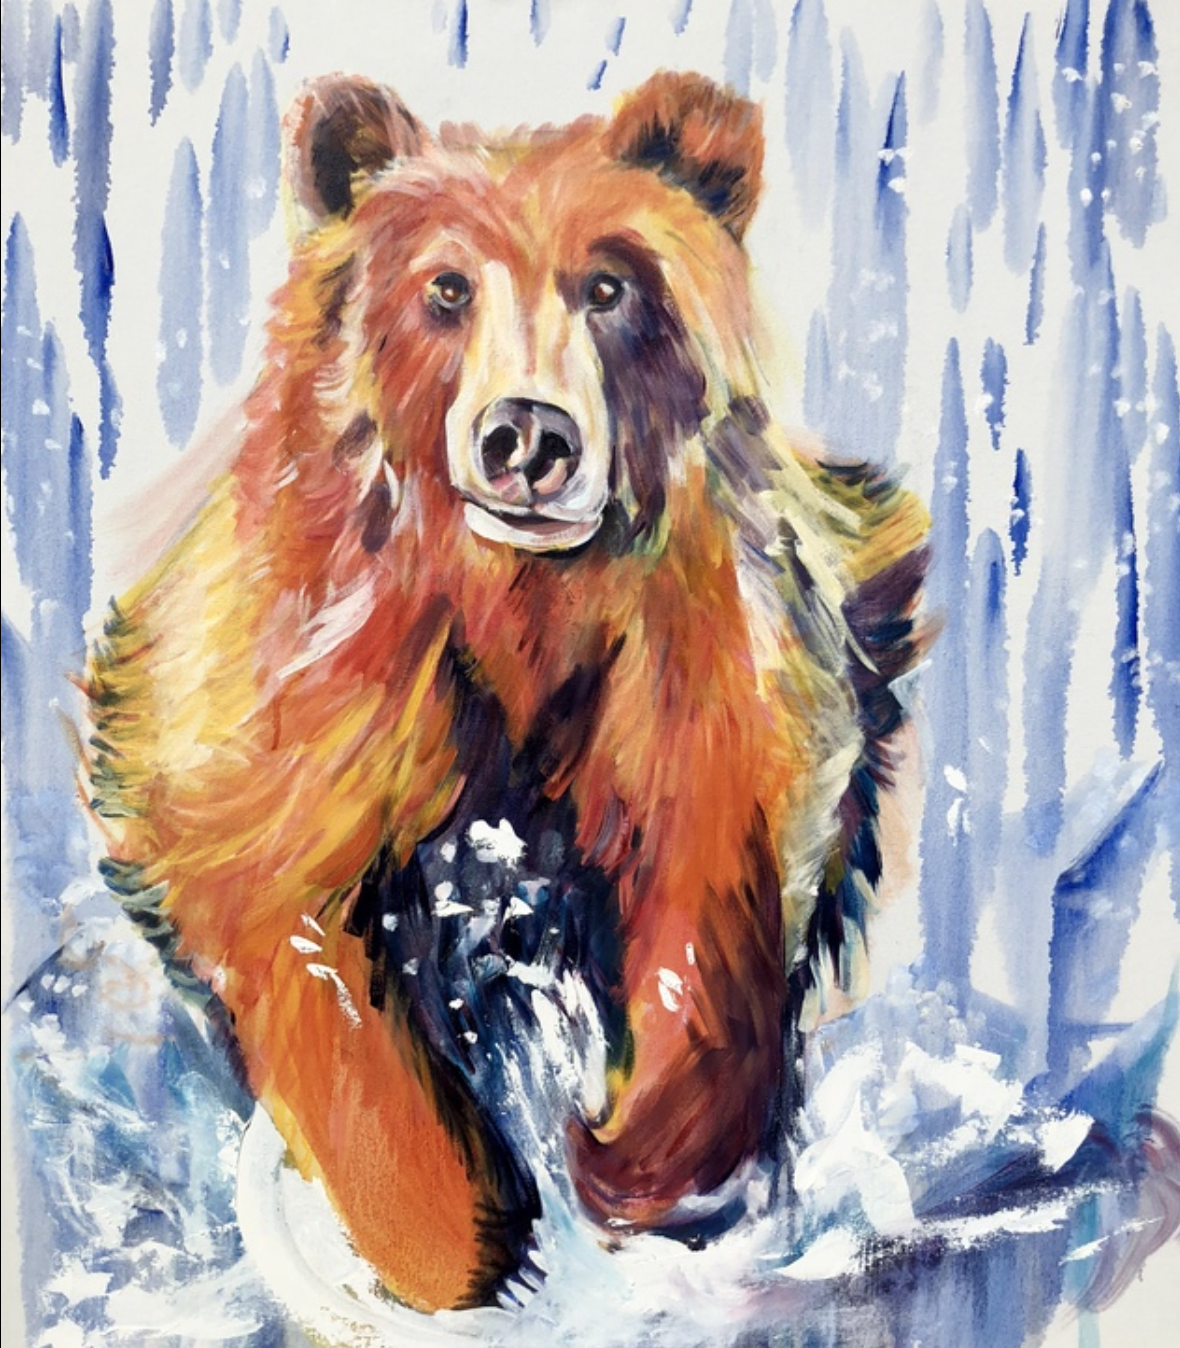 Nicole Perrin - http://nickieperrin.comThe visual content reflects my passion for wildlife in contemporary impressionistic form. Each painting is developed using numerous sheer glazes and distinctive marks.